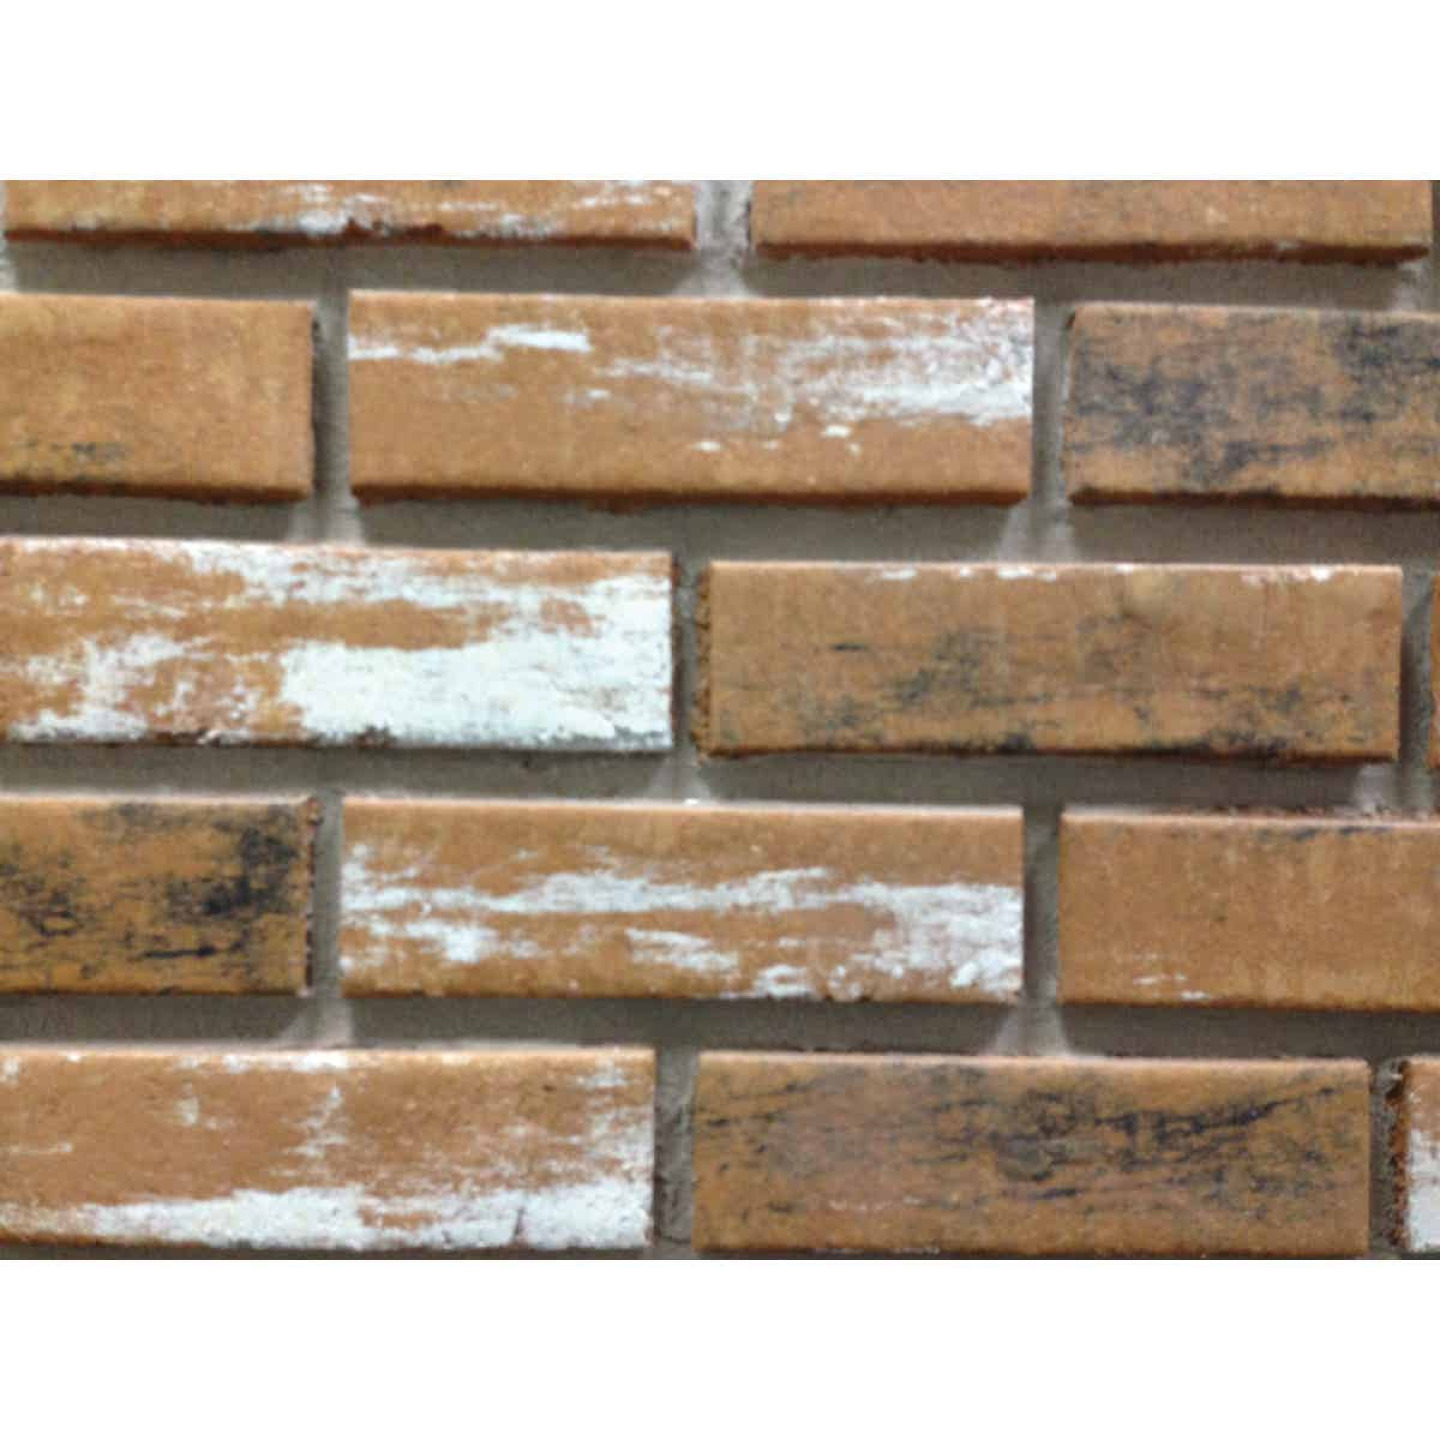 Z-Brick Inca 2-1/4 In. x 8 In. Old Chicago Facing Brick Image 1